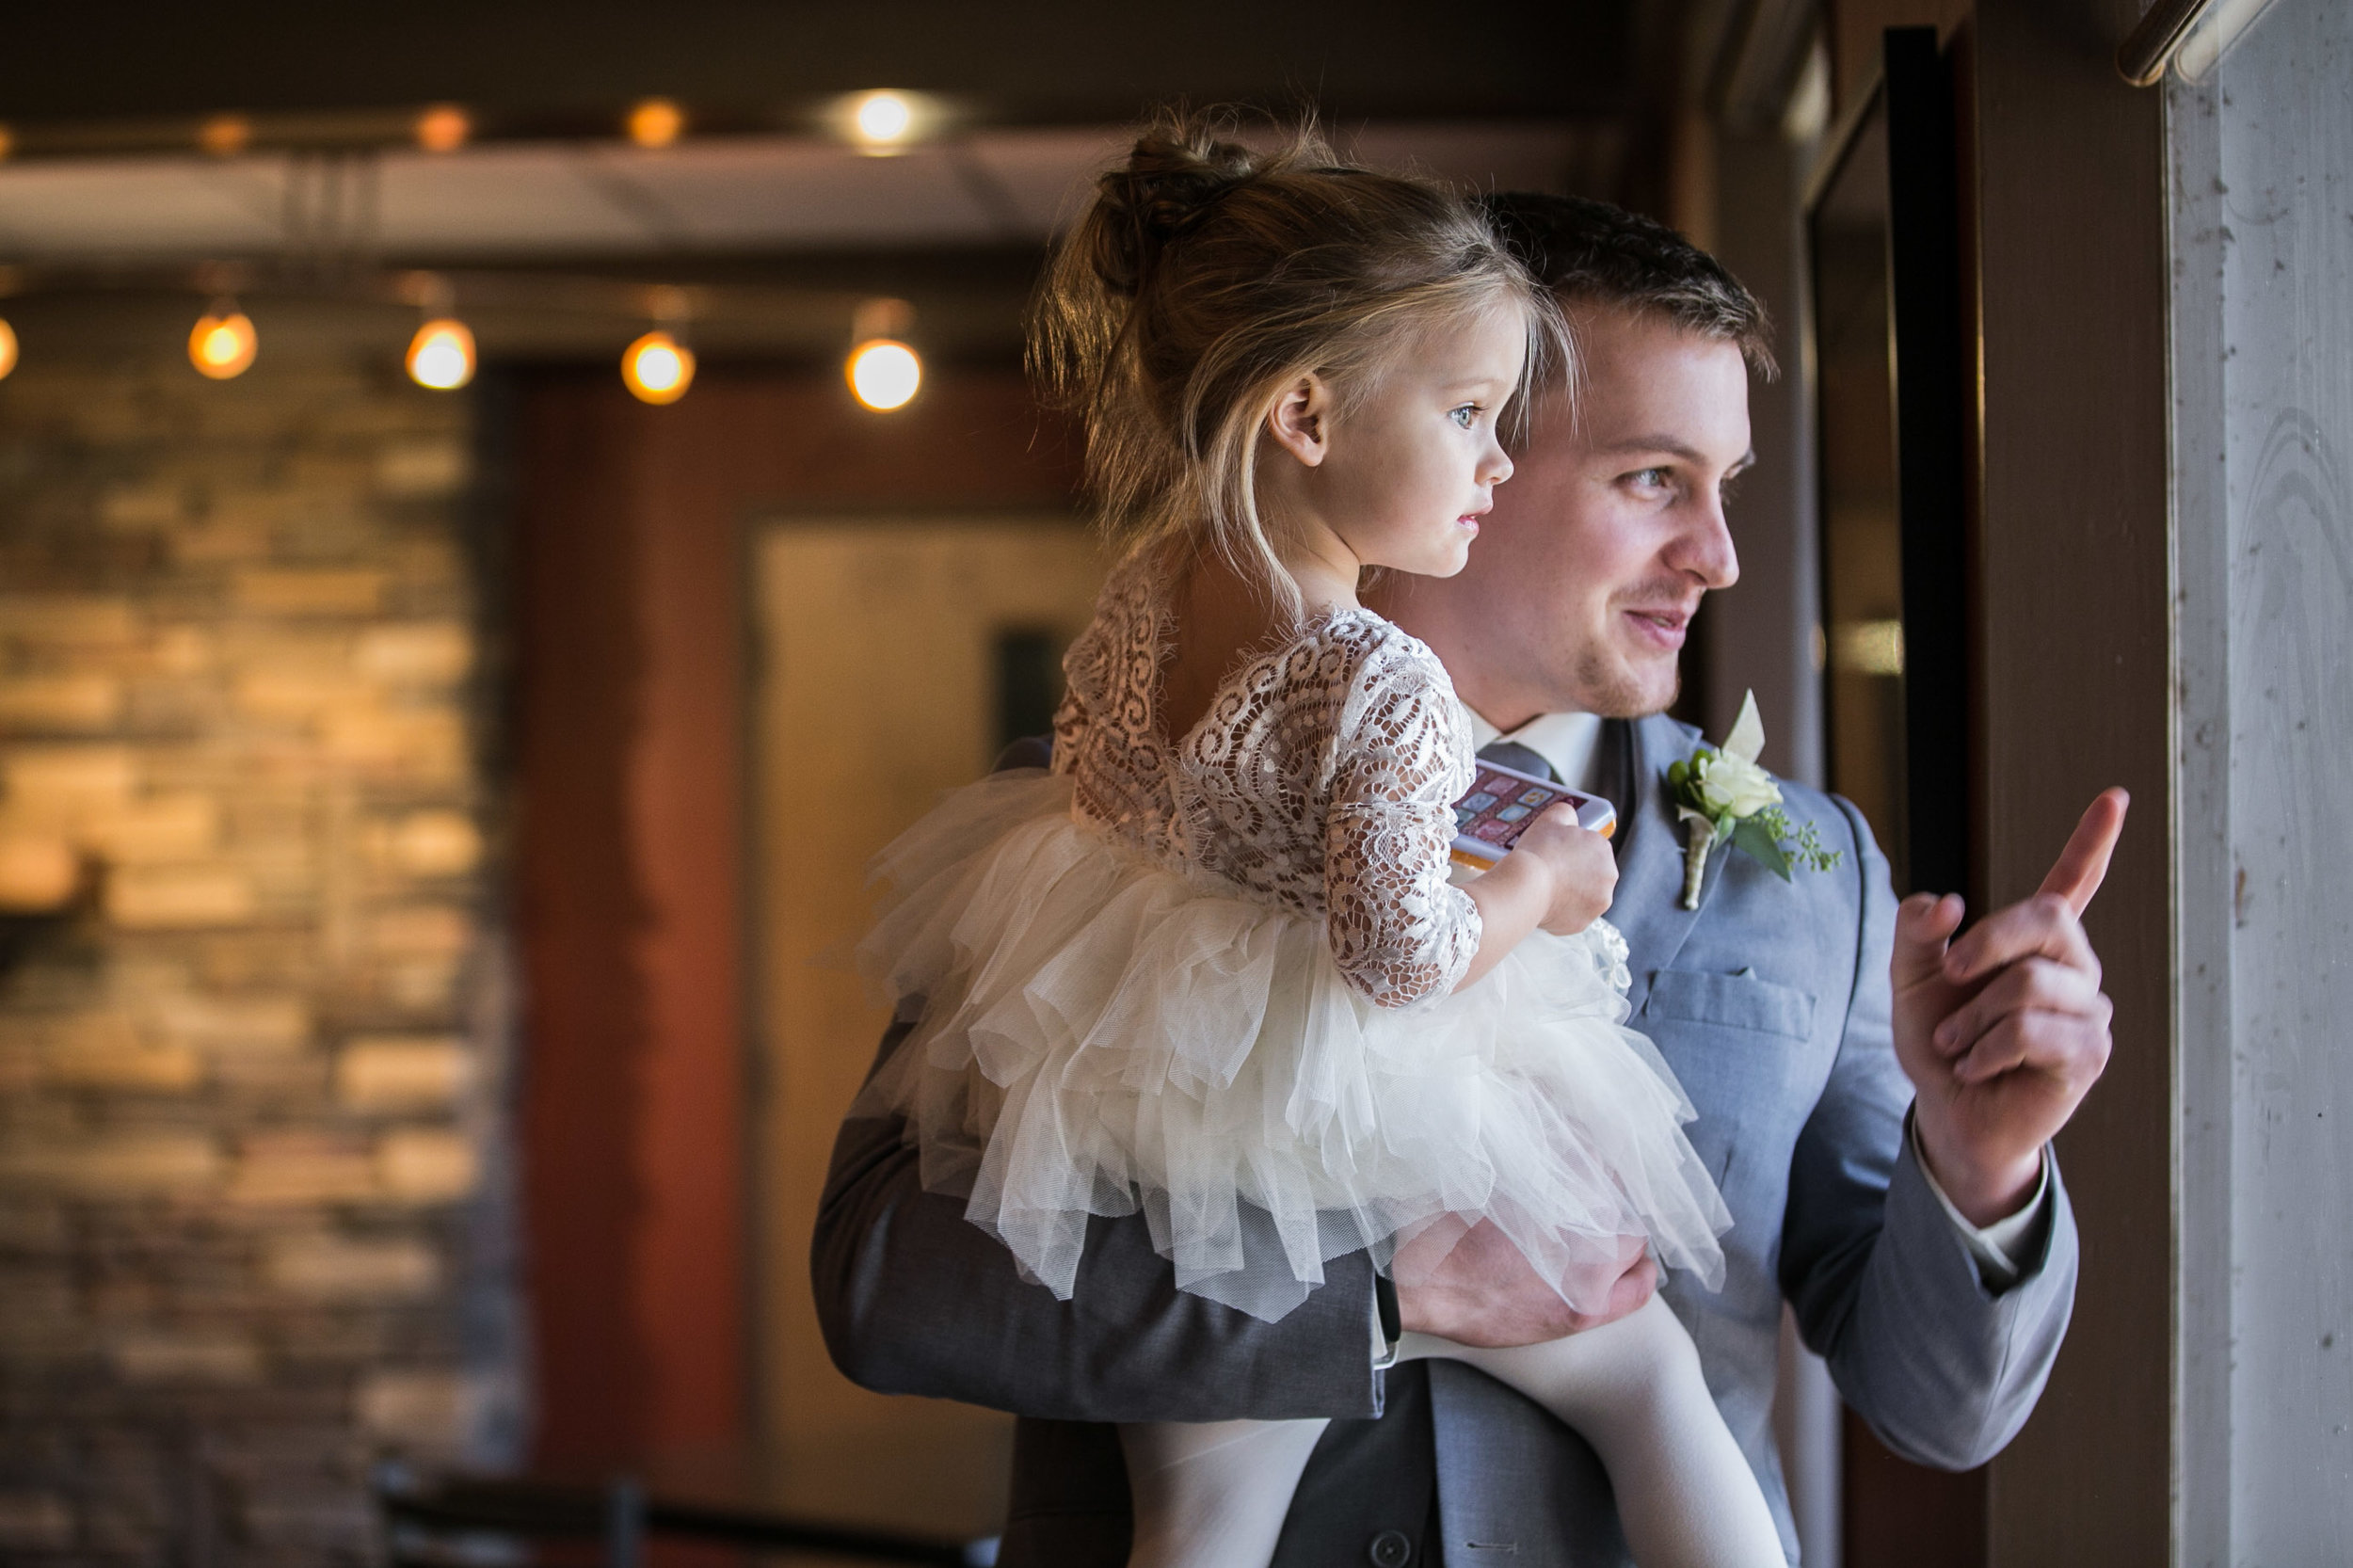 groom and daughter looking out the window before wedding ceremony